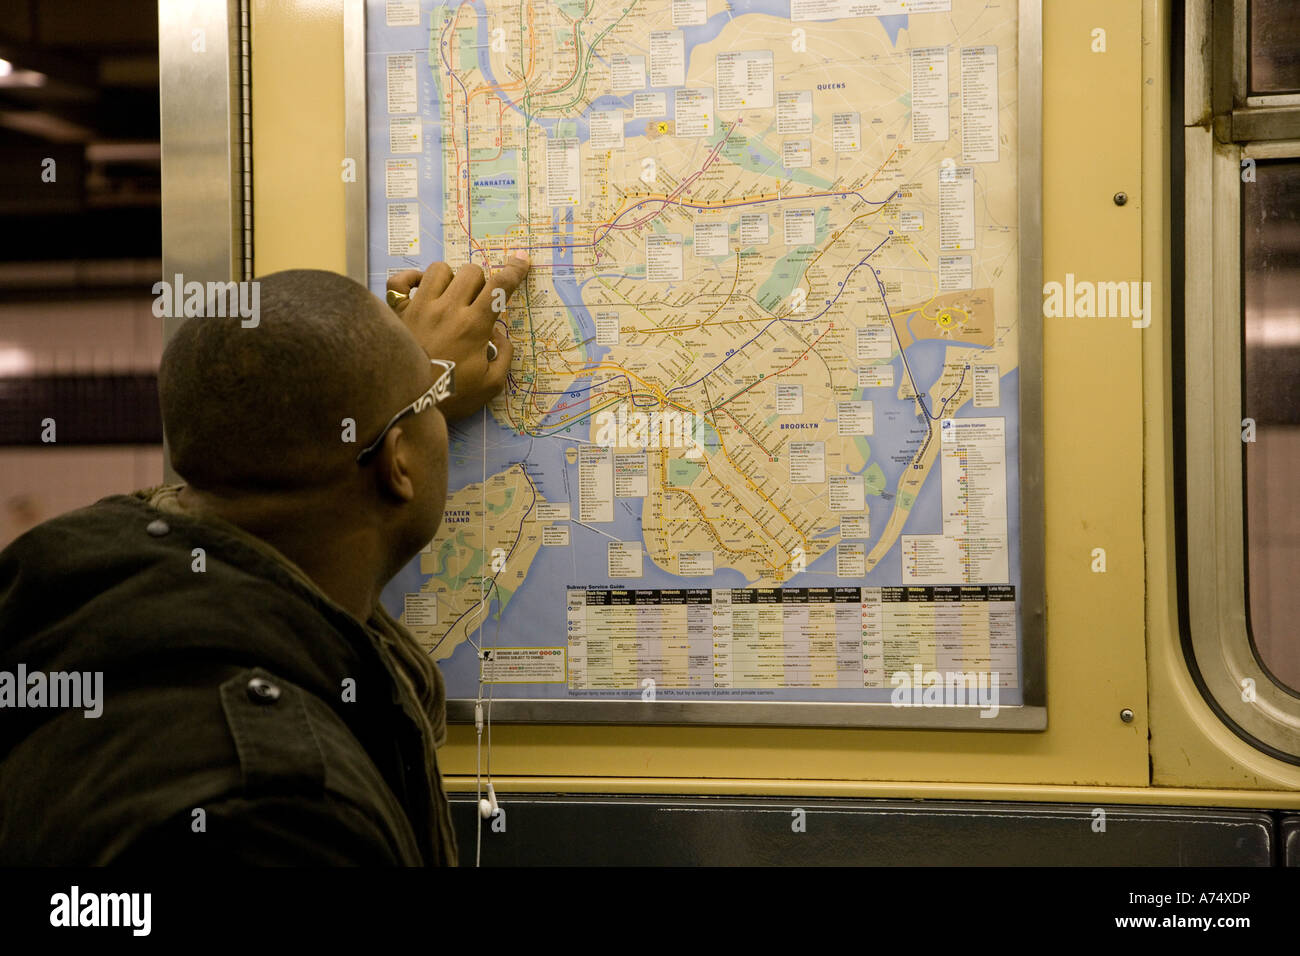 Ny Subway Map 7 Train.Nyc Subway Map Stock Photos Nyc Subway Map Stock Images Alamy